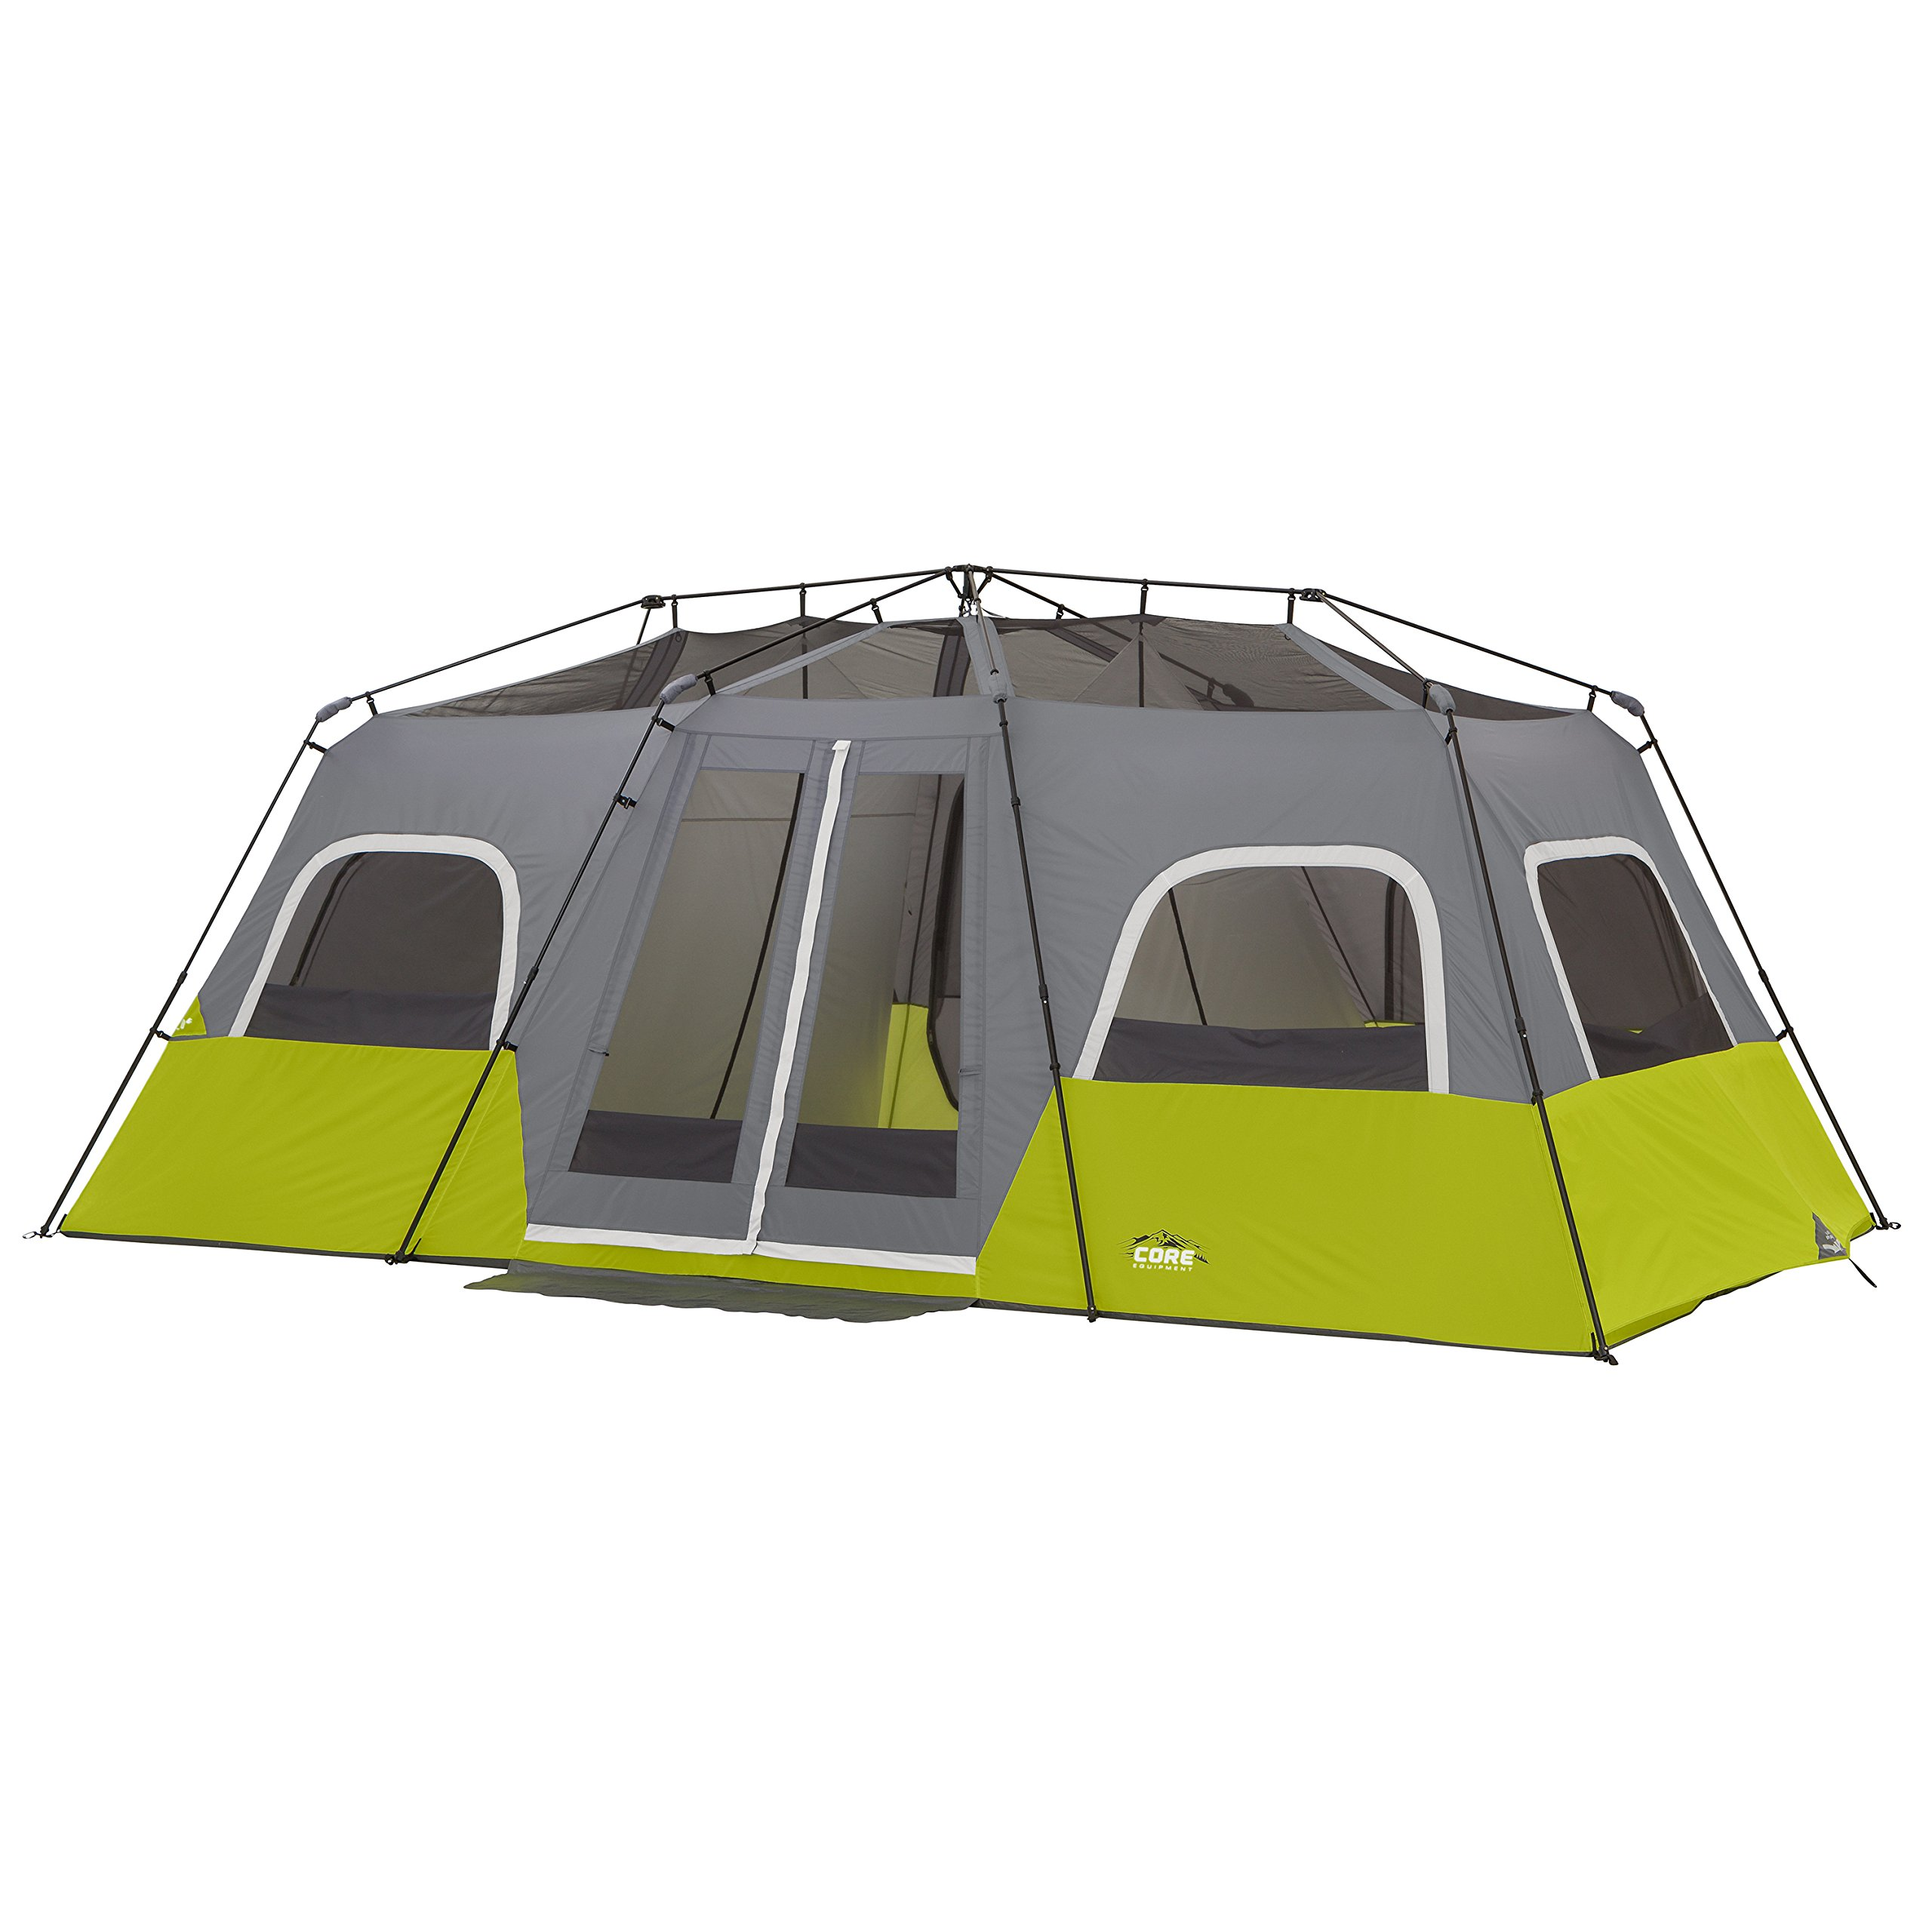 CORE 12 Person Instant Cabin Tent - 18' x 10' by CORE (Image #1)